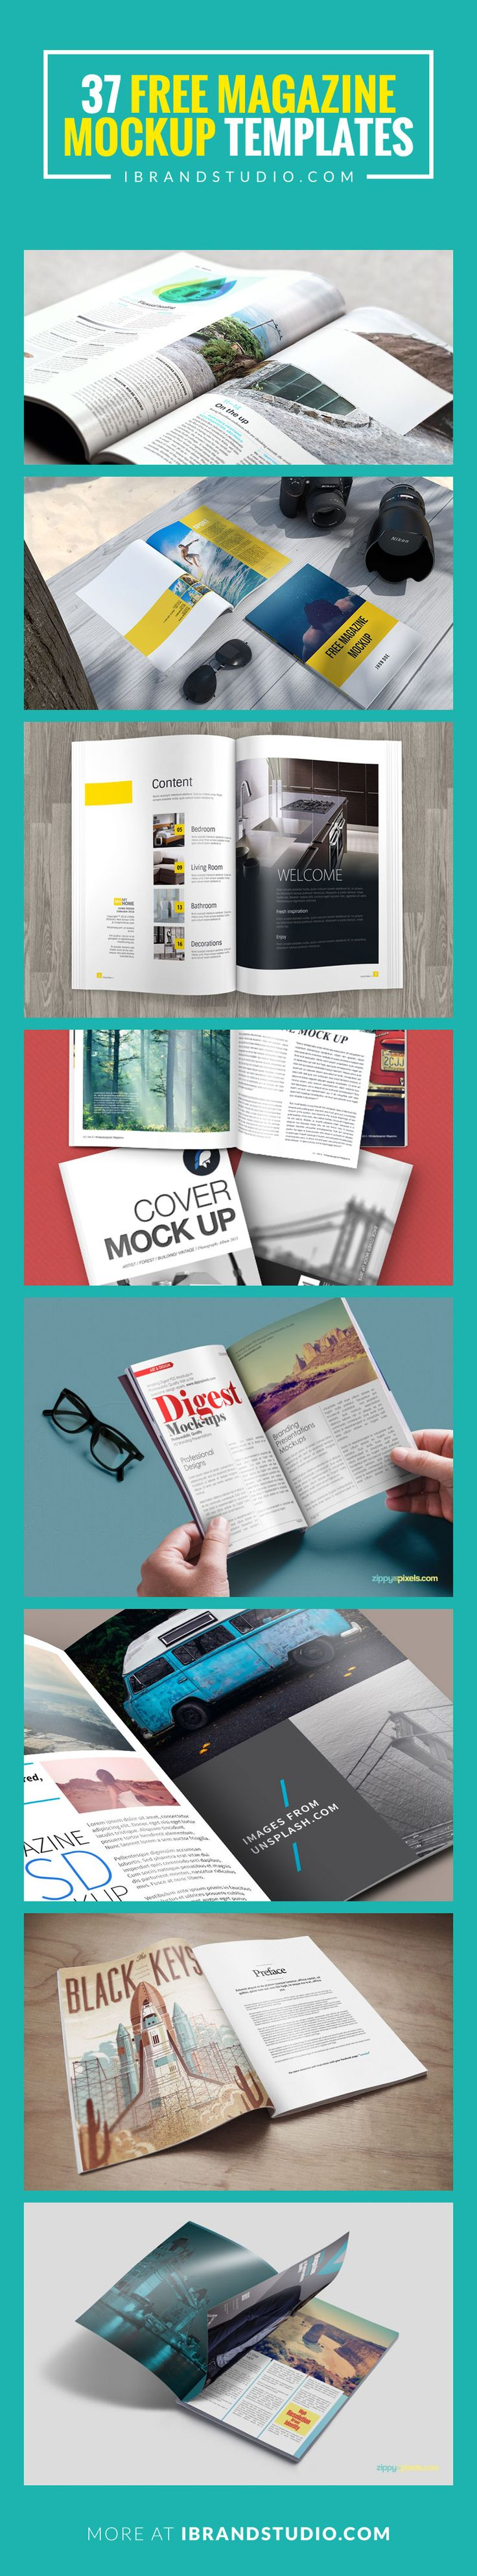 Magazine Mockup Templates (PSD) - Free Download! #mockup #psd